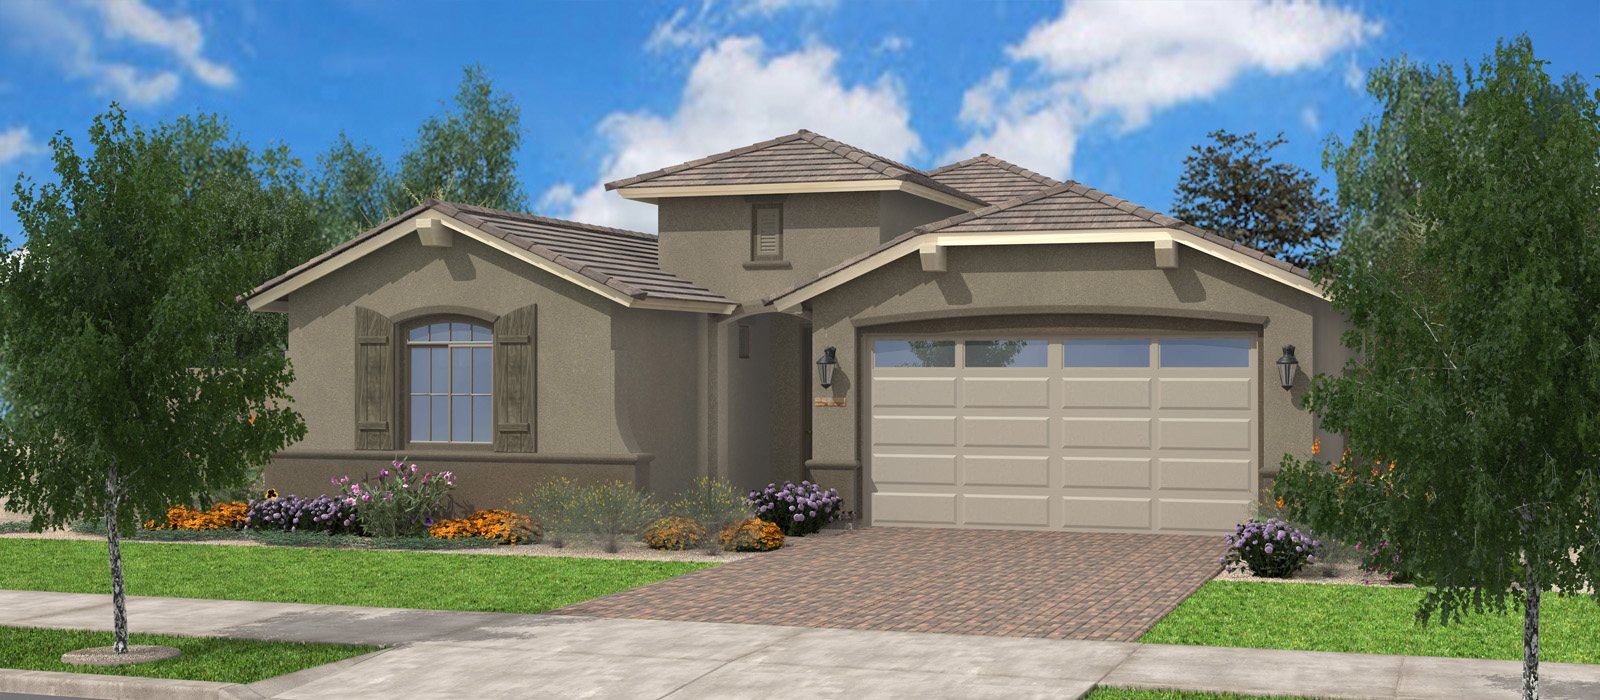 White Oak - Reserve at Queen Creek Station by Fulton Homes